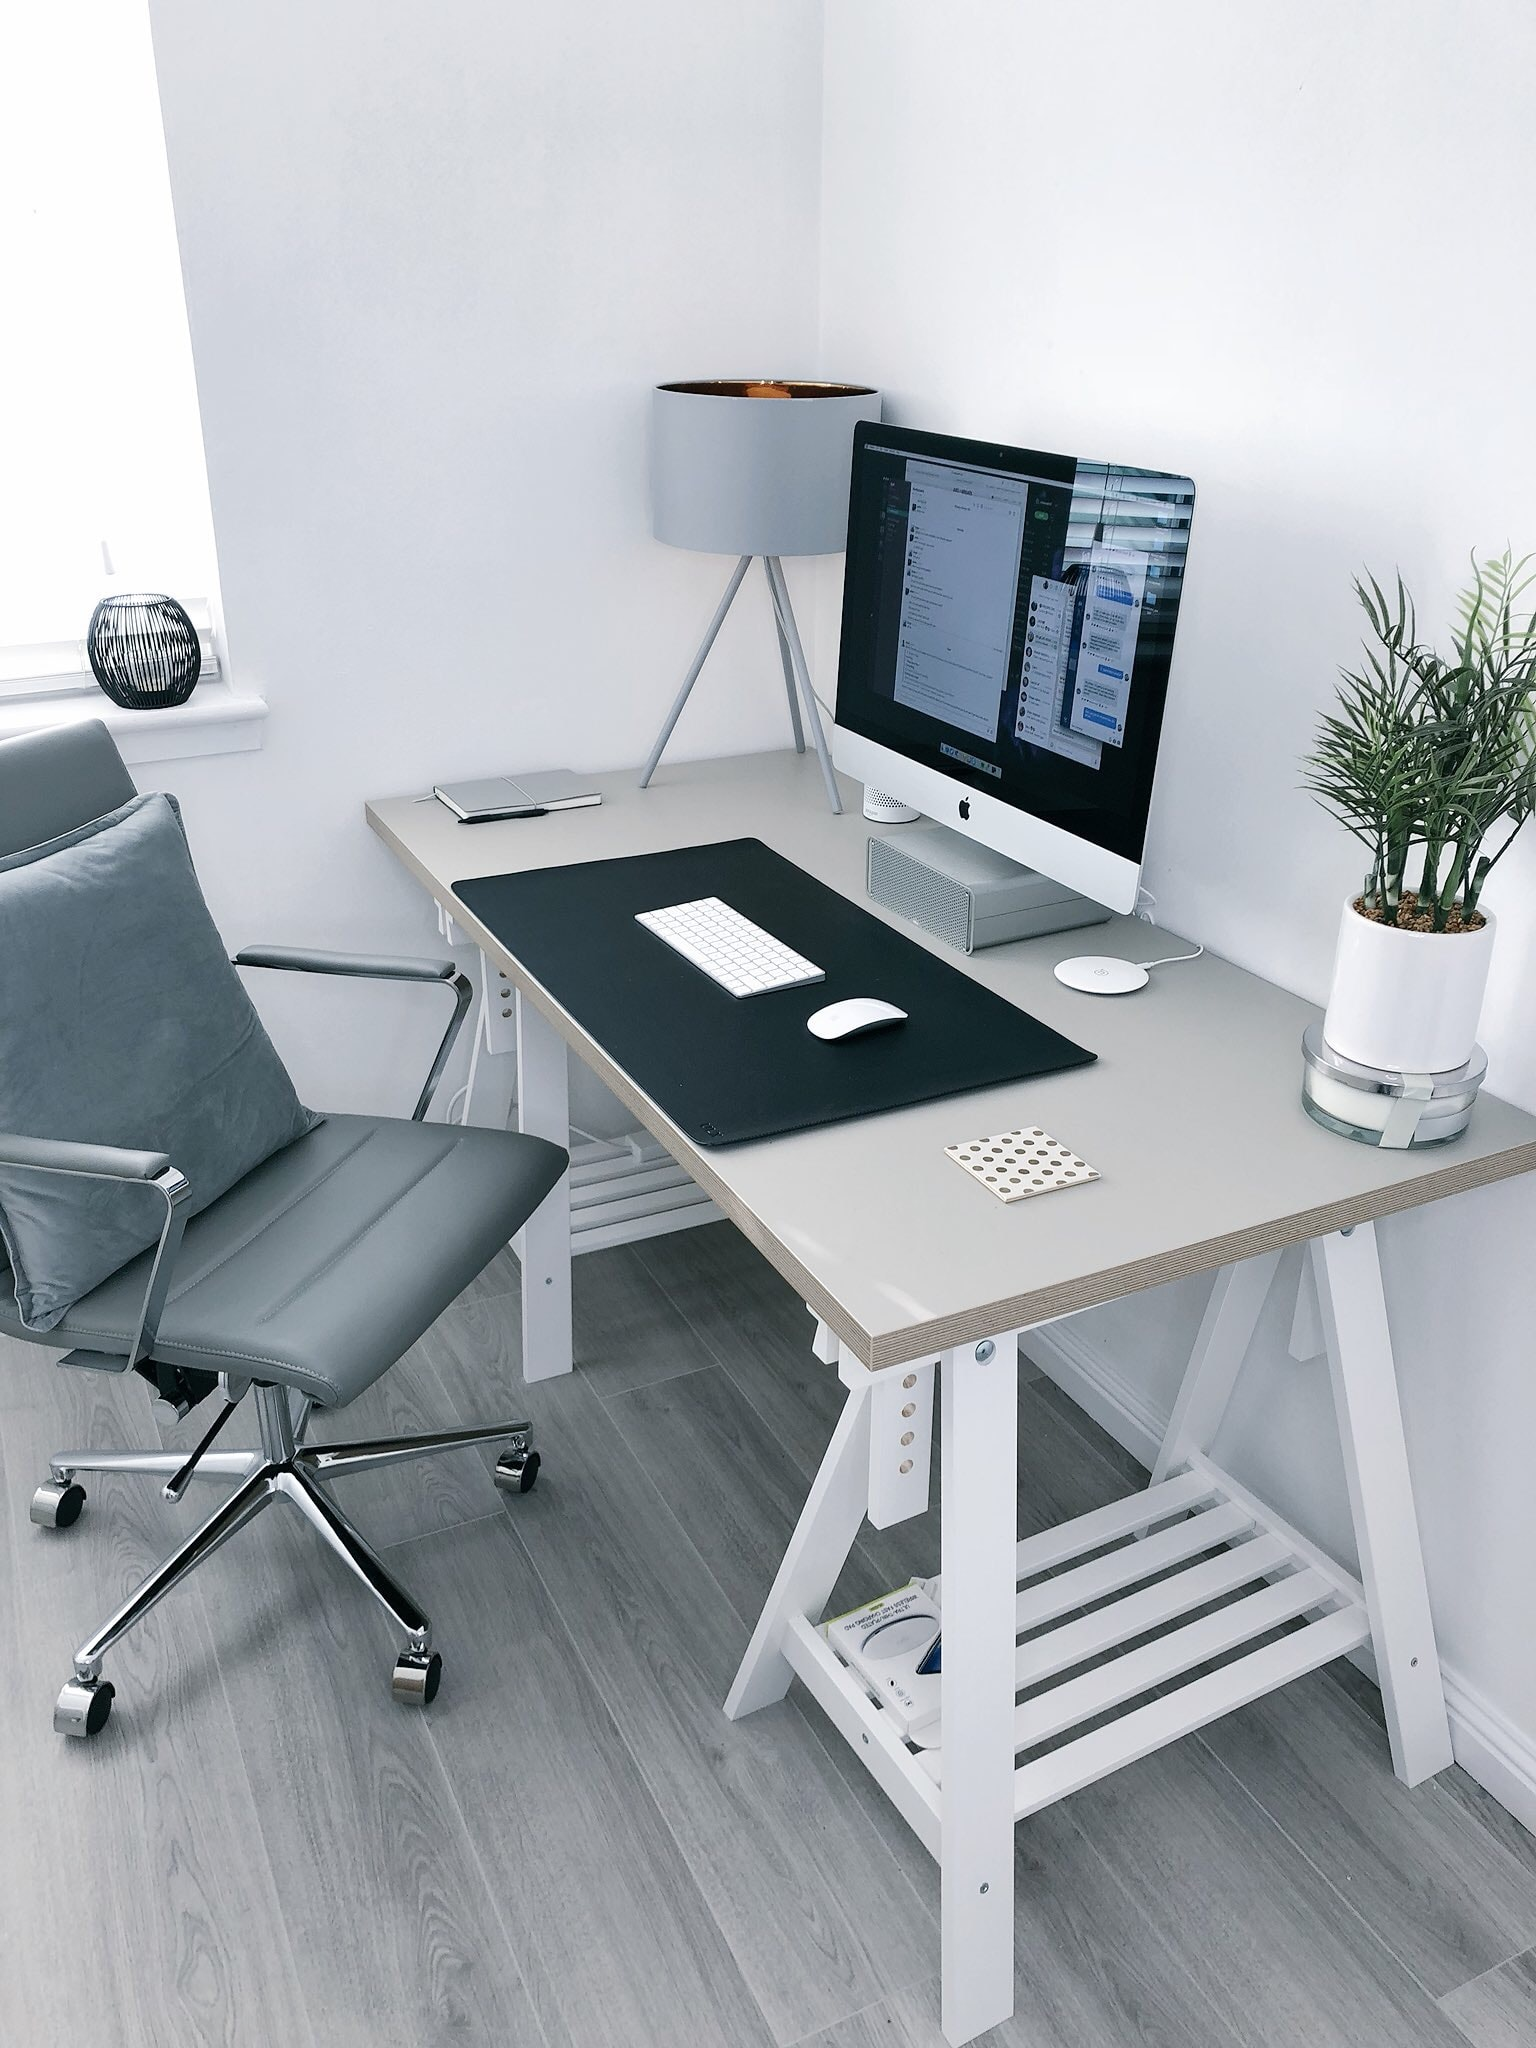 image of at-home desk